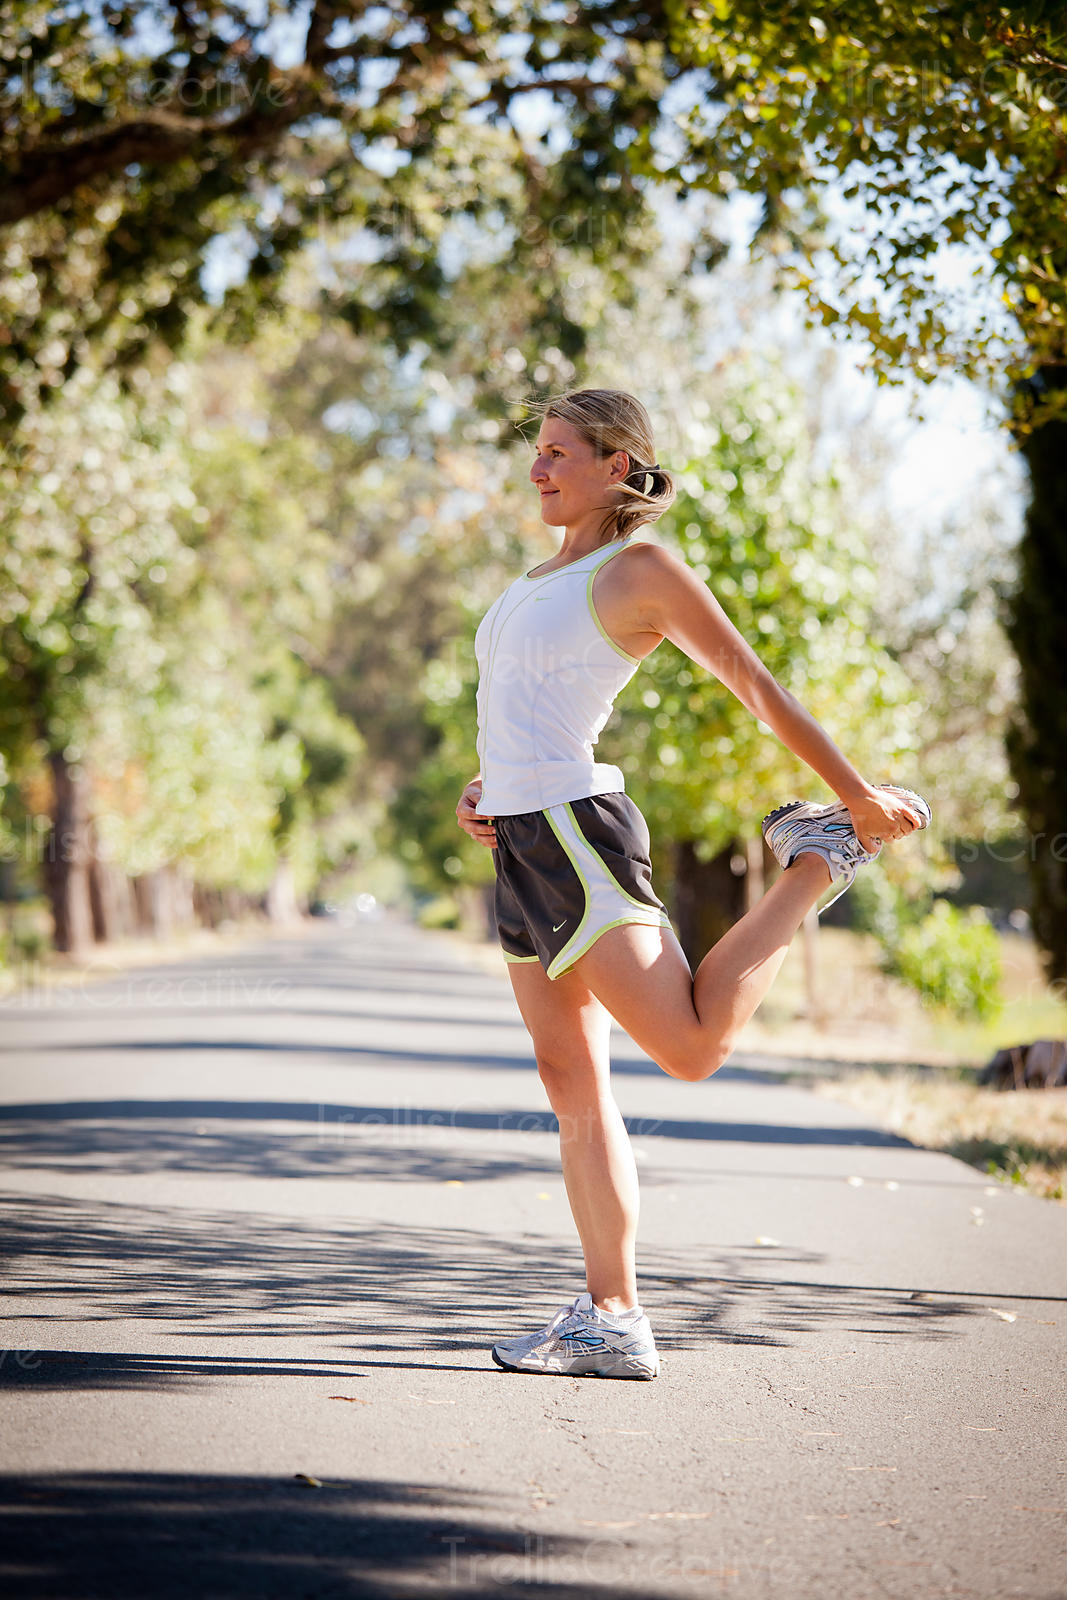 Young athletic woman stretches before running exercise